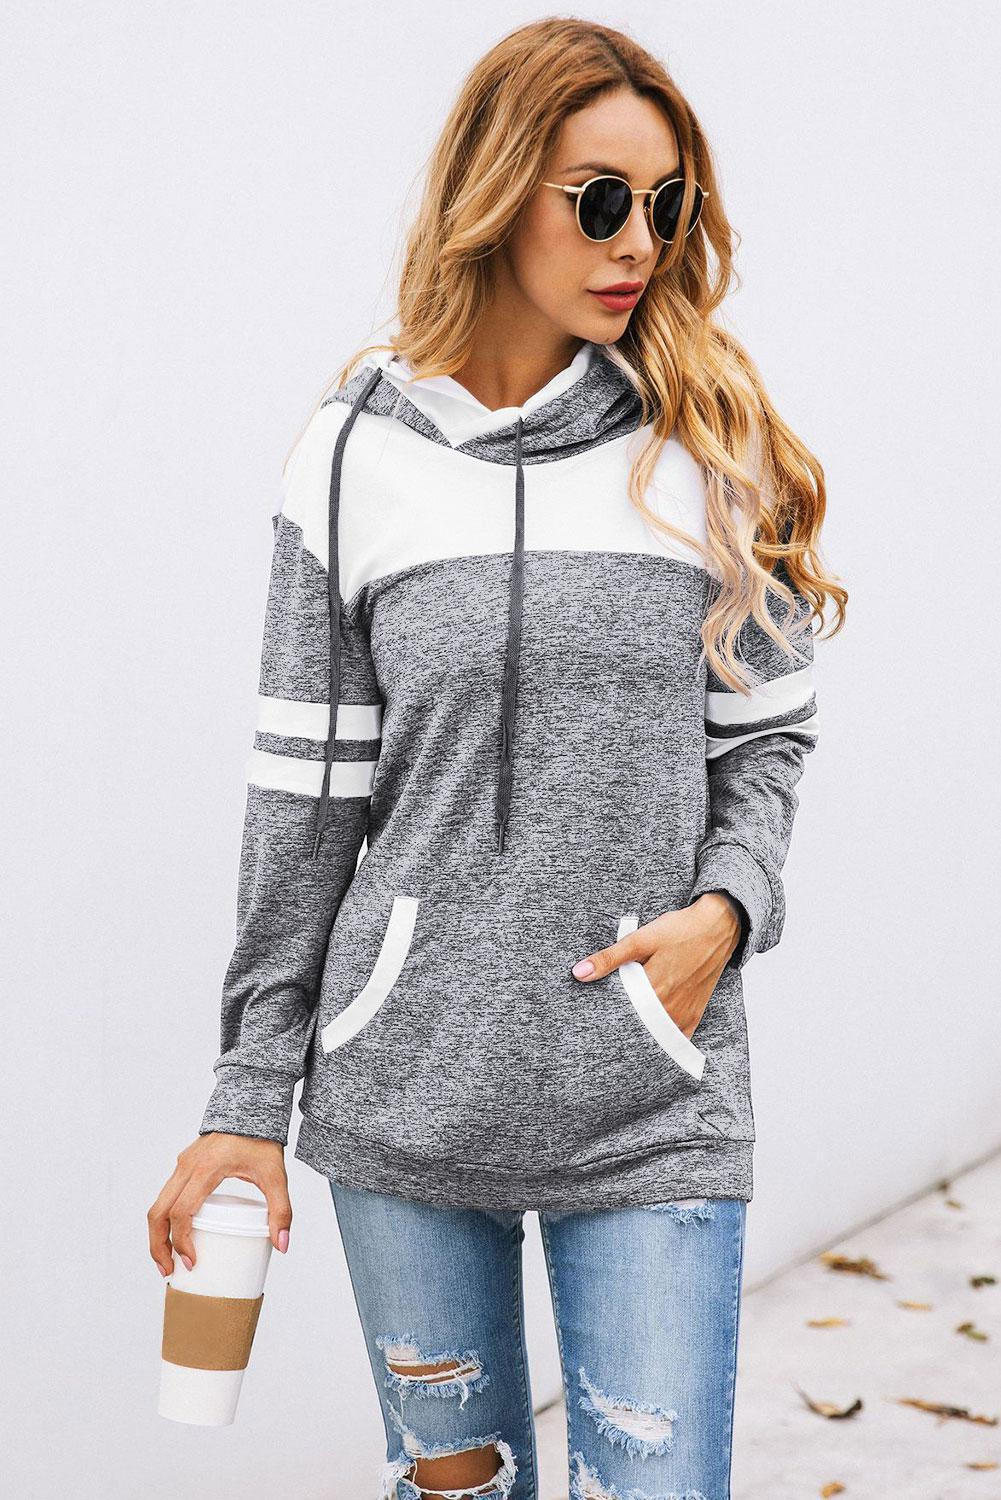 KaleaBoutique Gray Color Block Pullover Hoodie with Pocket - KaleaBoutique.com